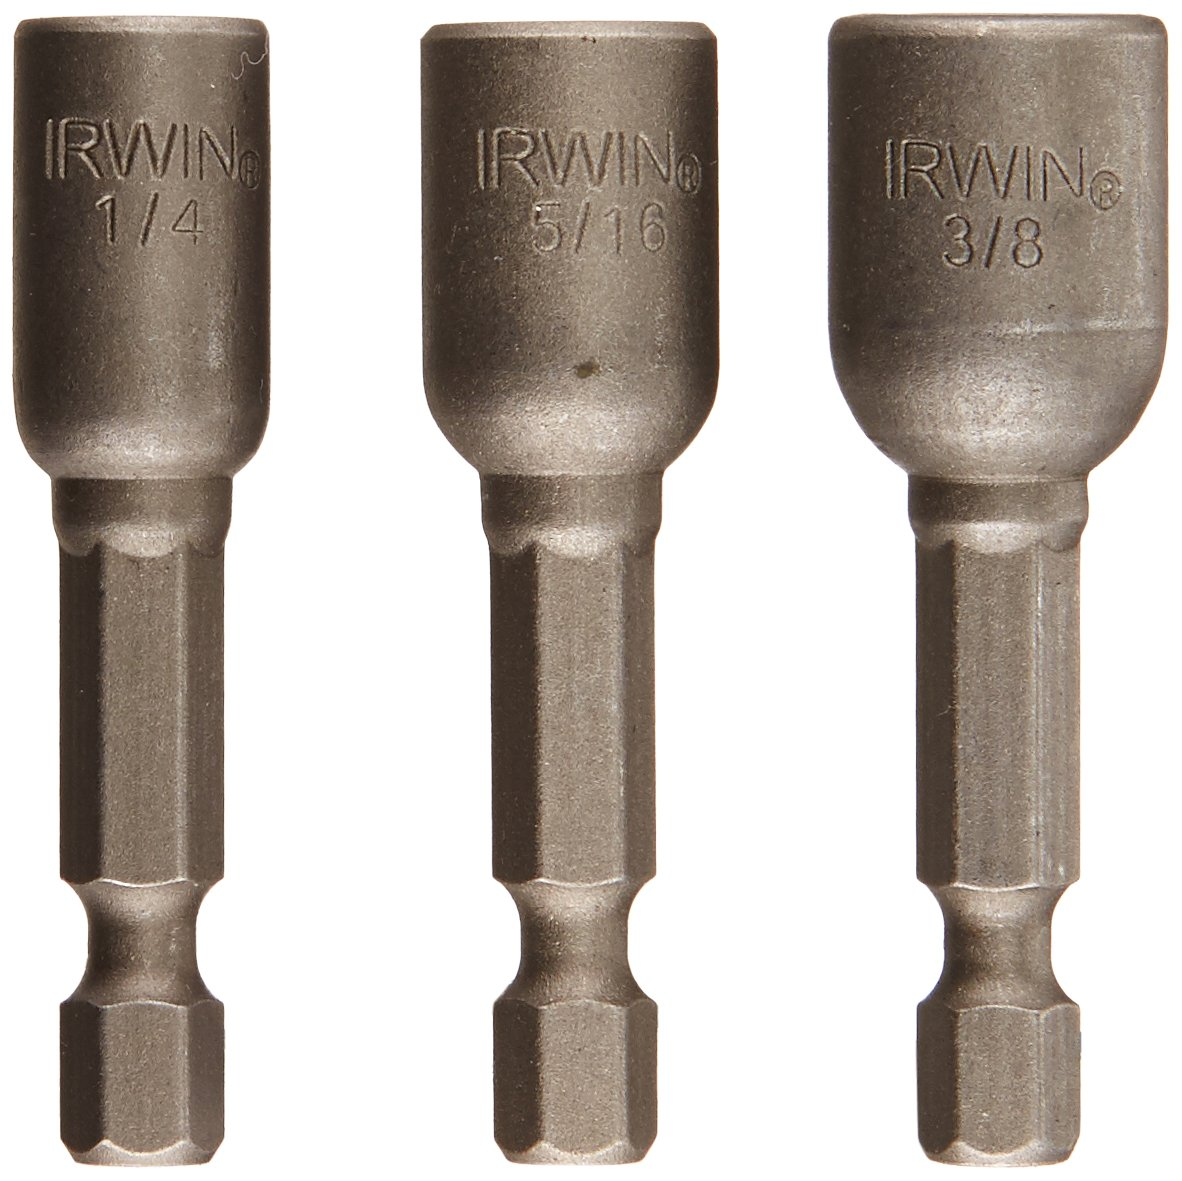 Irwin Tools 3545973C Magnetic Nutsetters 1-7/8-Inch, 3-Piece Set